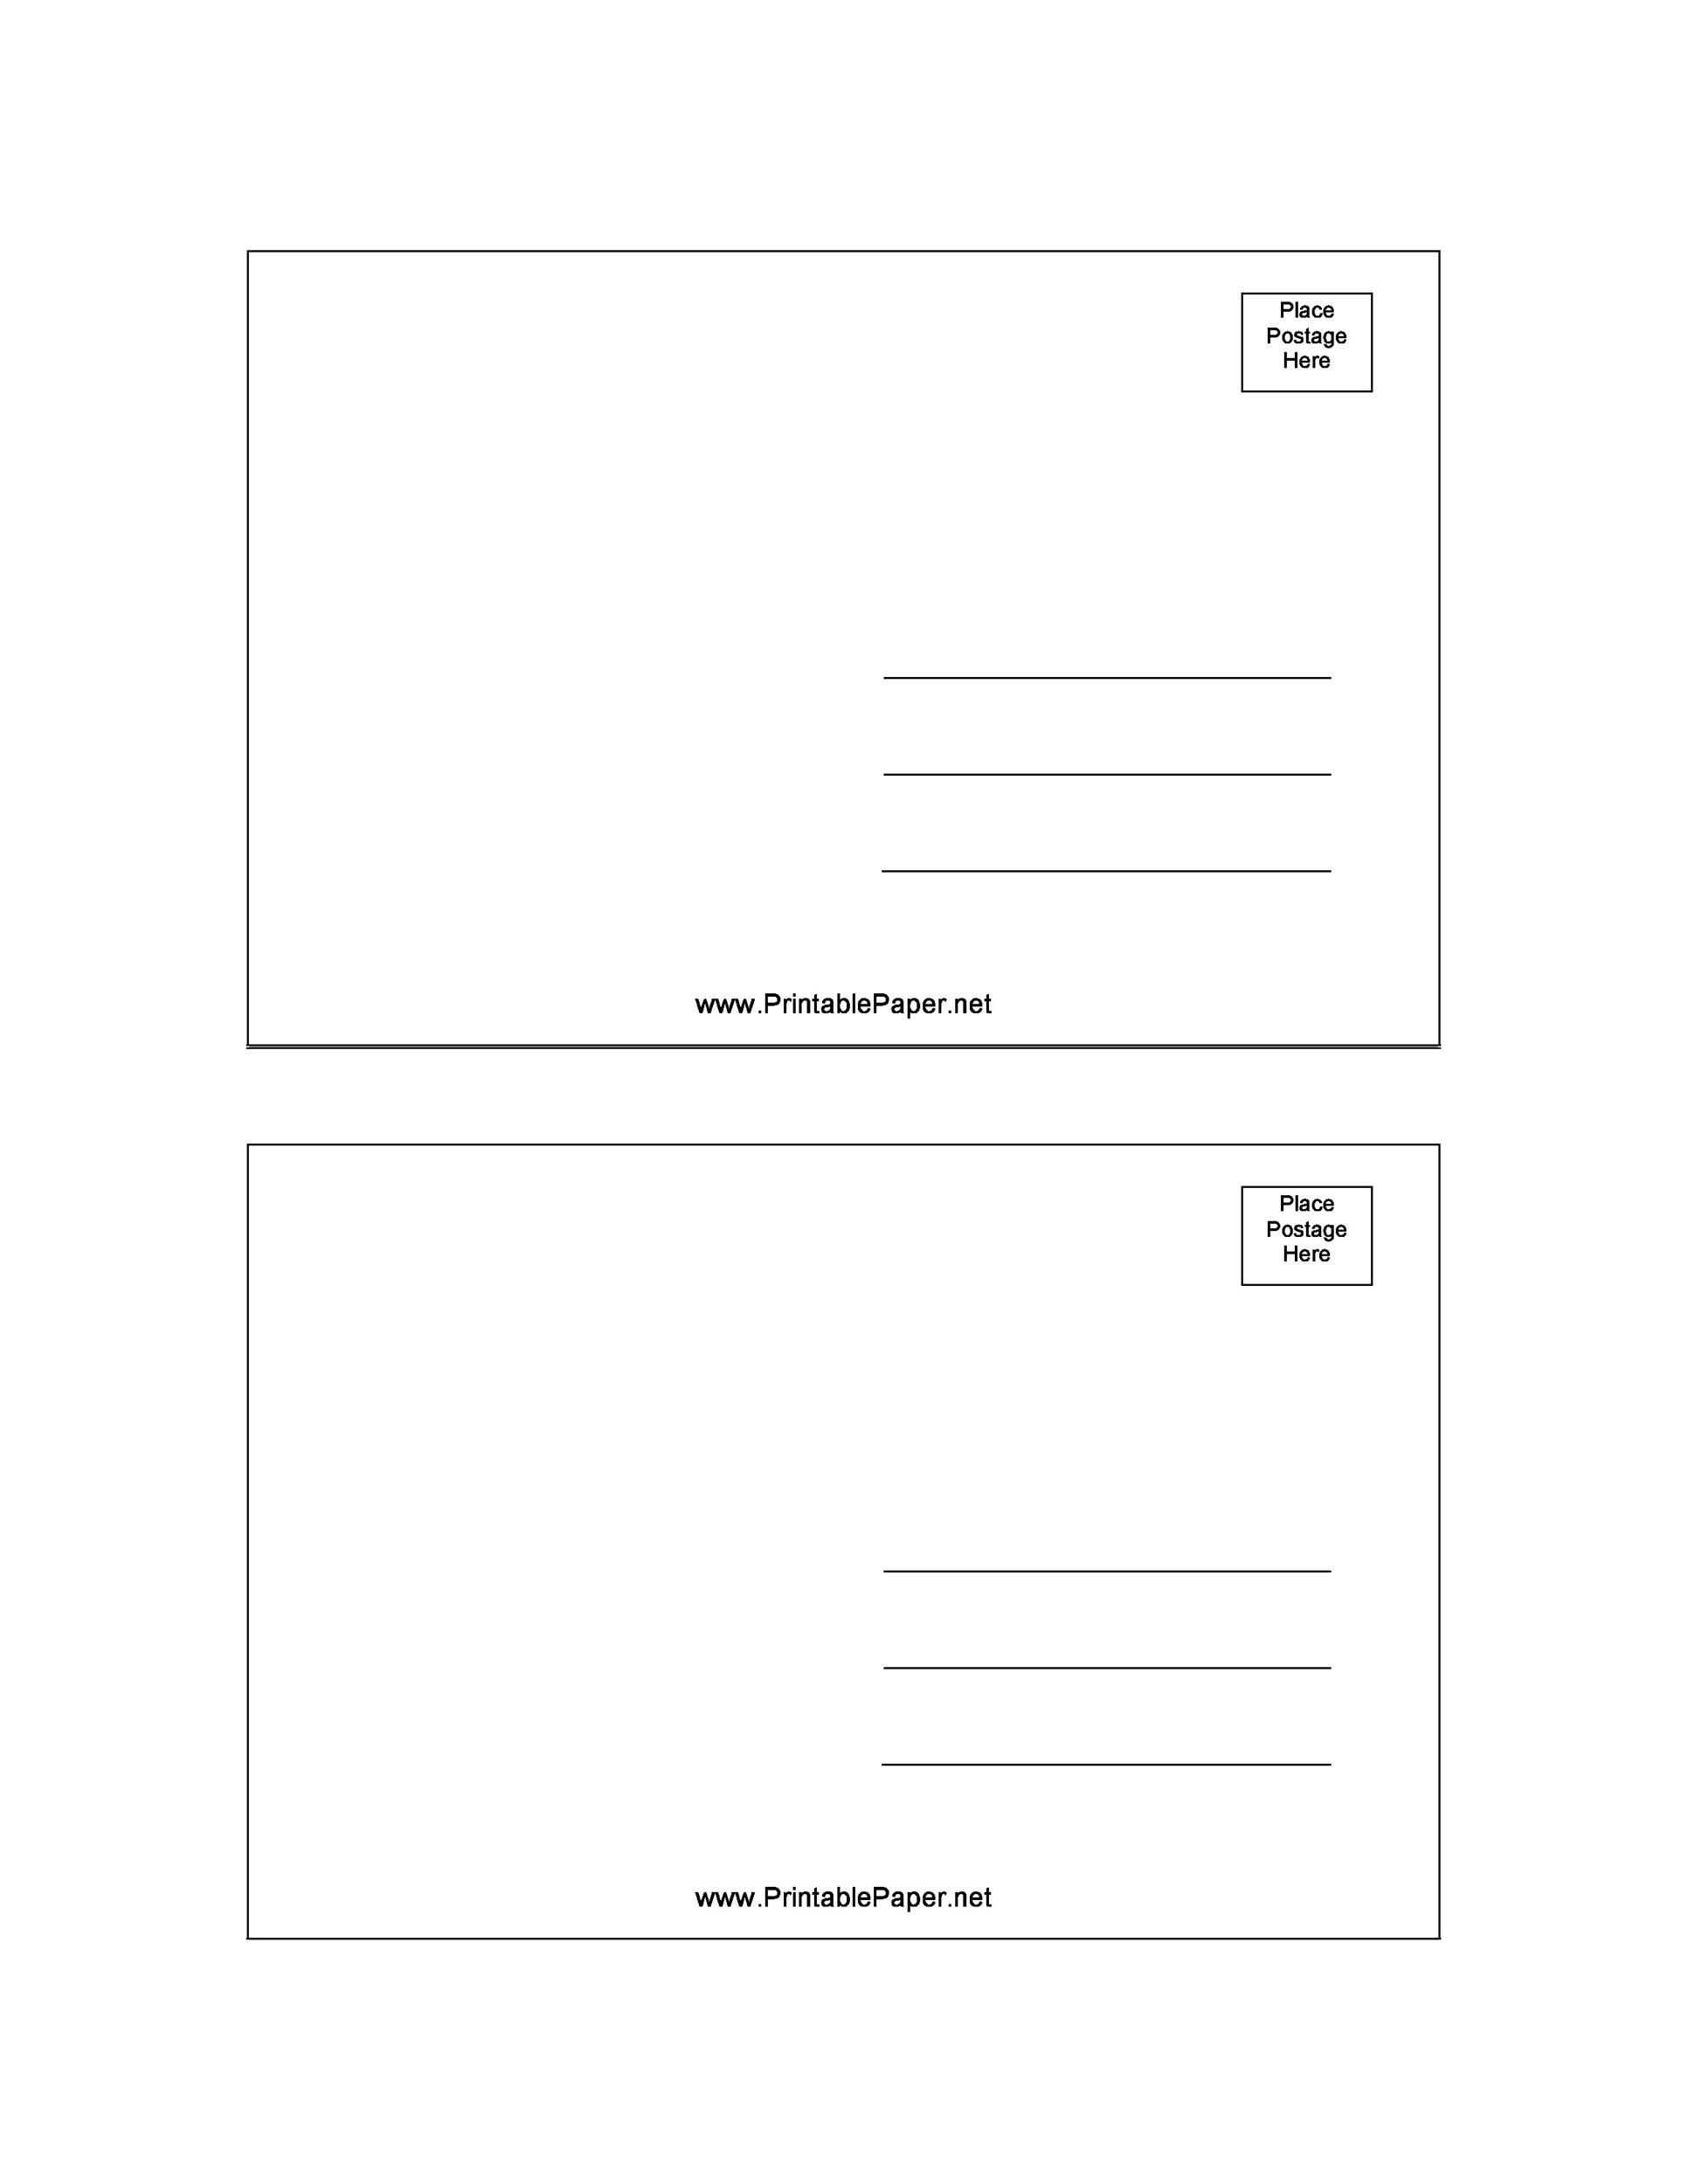 008 Amazing Free Postcard Template For Word Example  Printable Christma Place Card 4x6Full